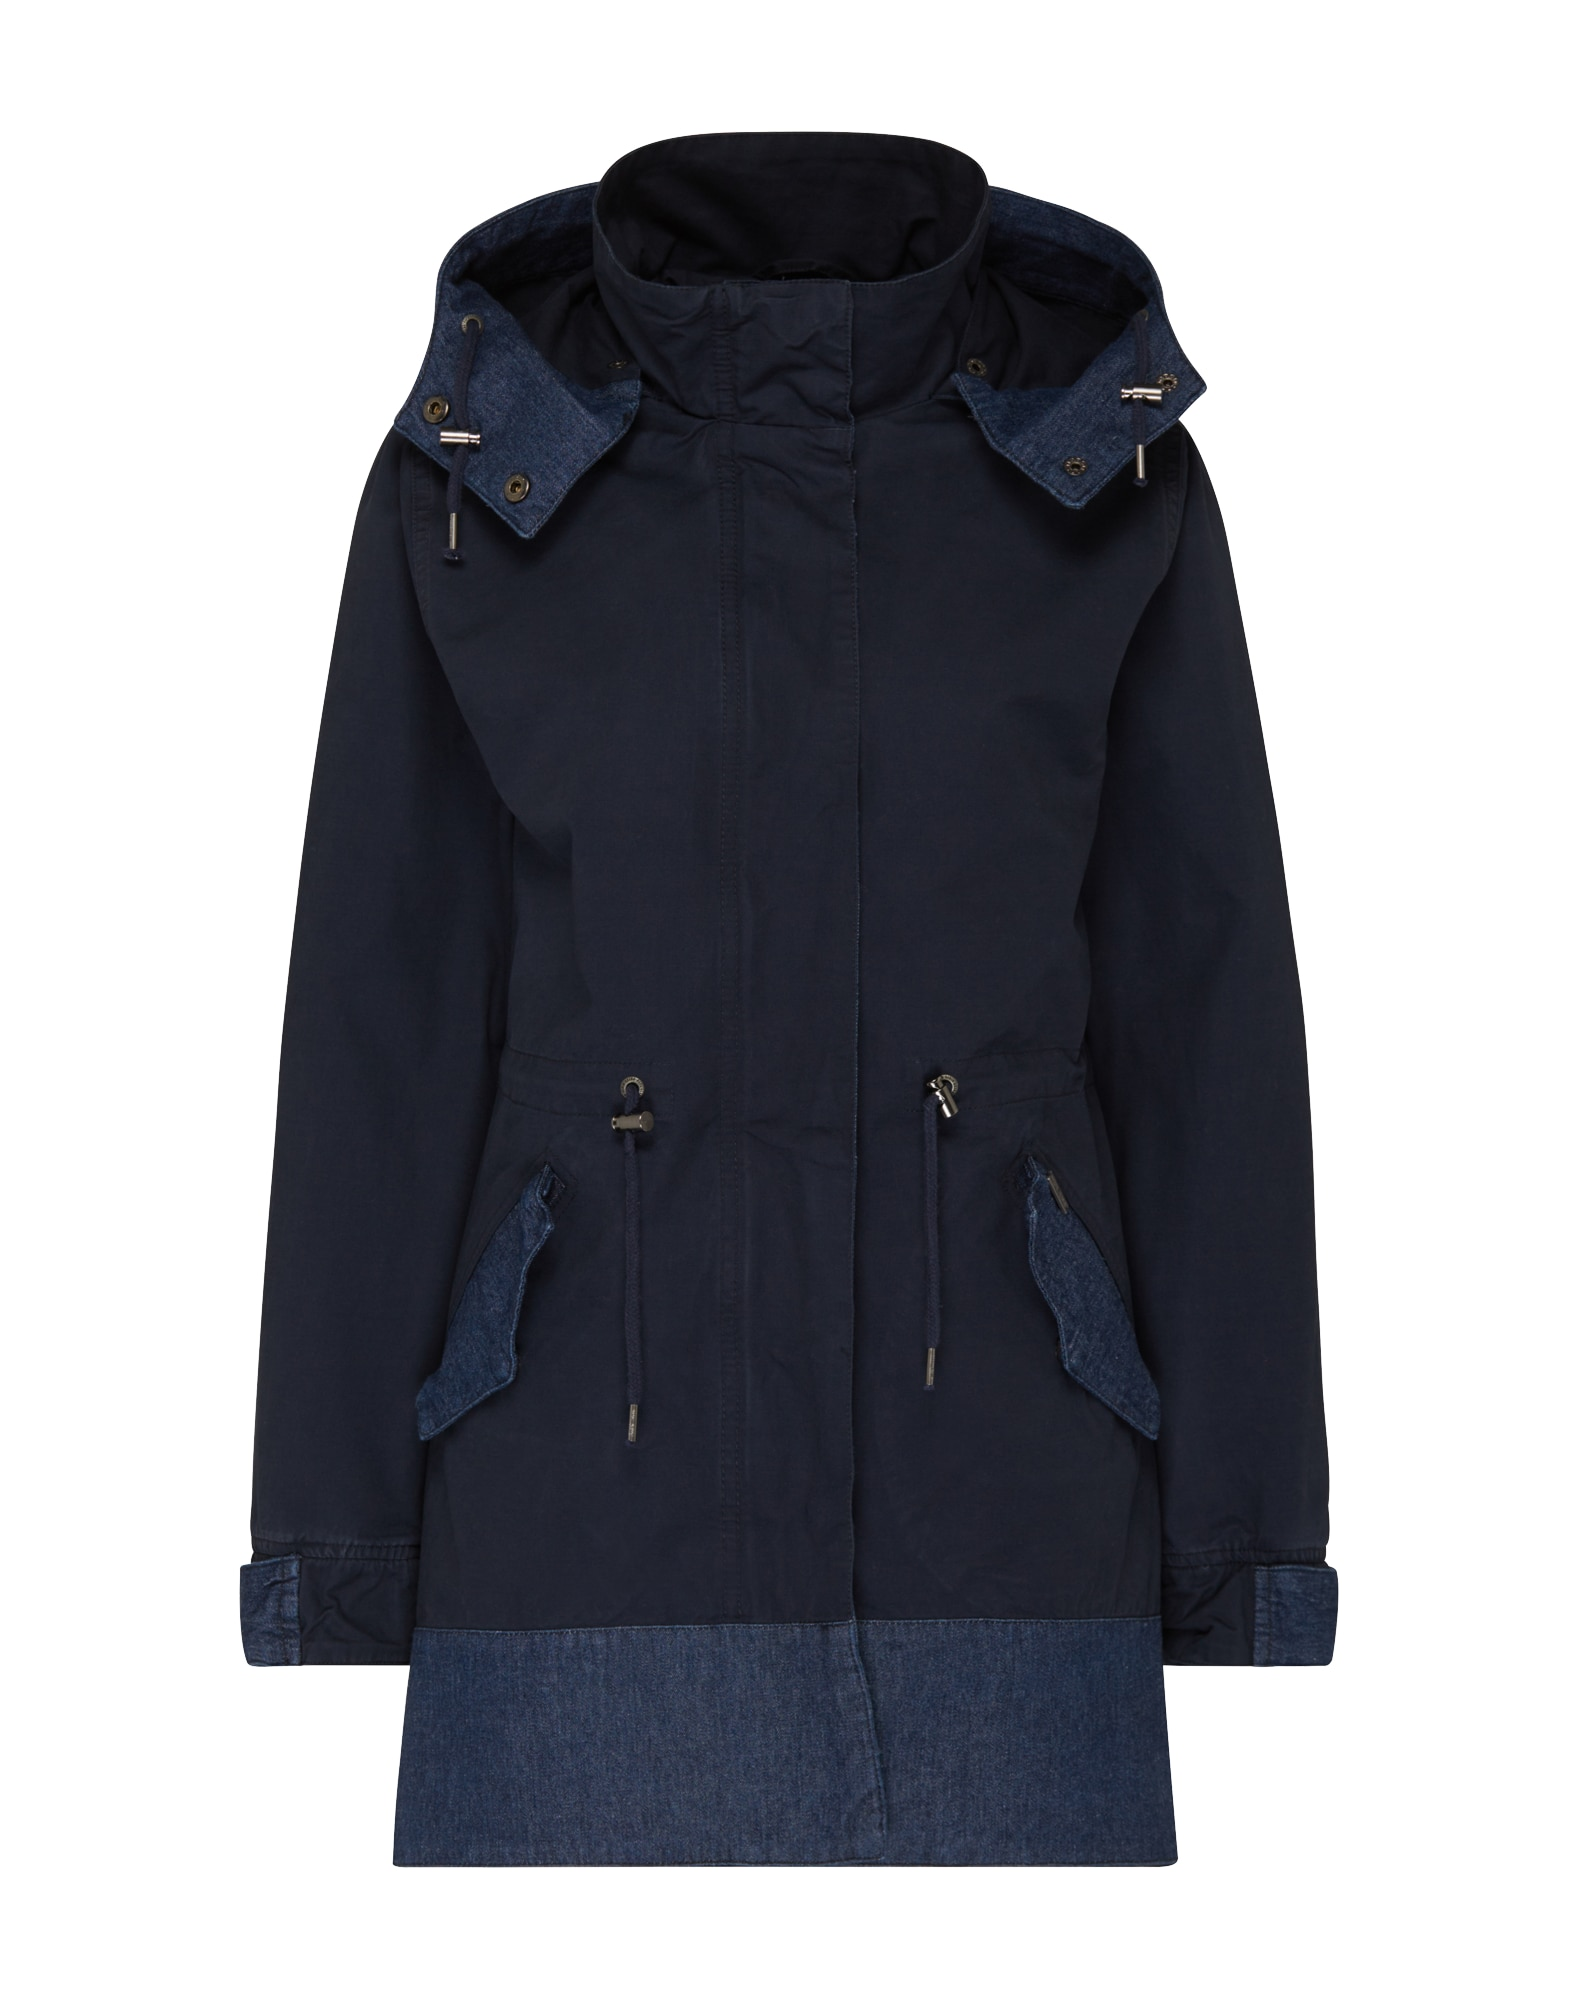 Pepe Jeans Dames Tussenjas Perin donkerblauw